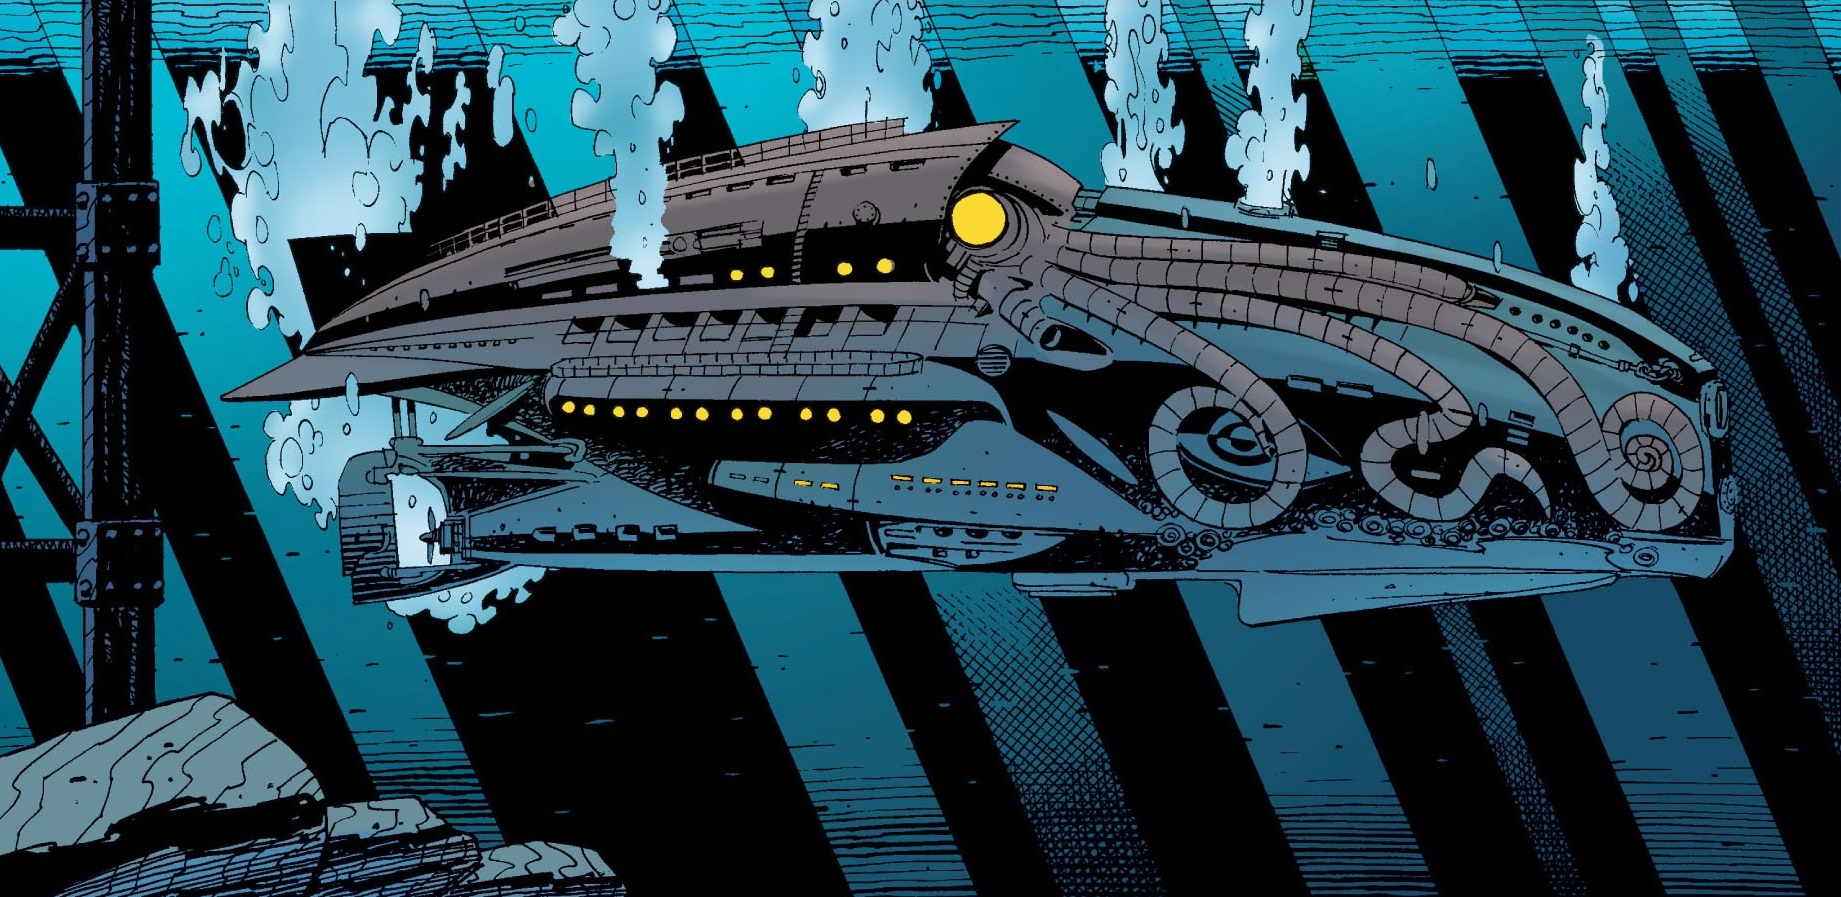 Nautilus (League of Extraordinary Gentlemen)